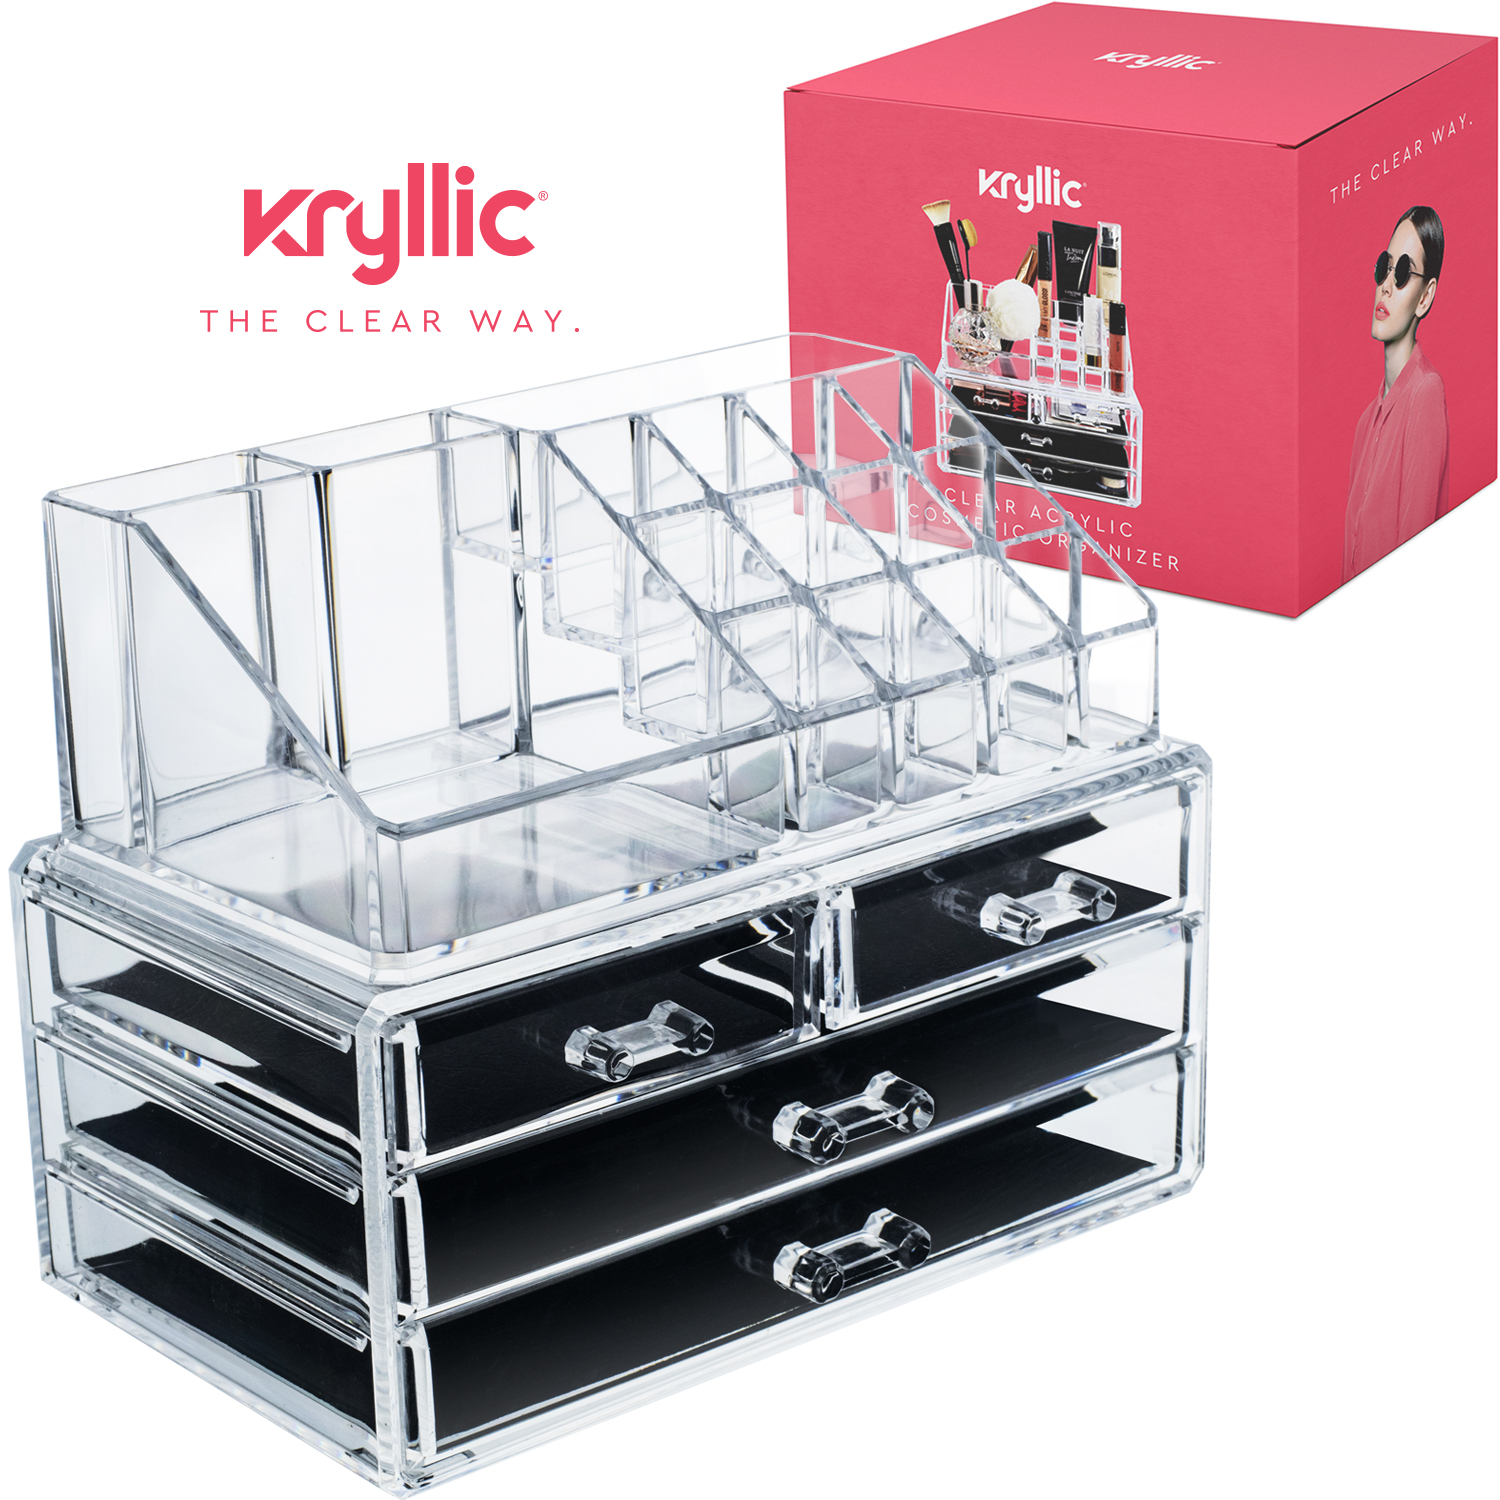 2019 year for girls- Makeup Acrylic organizer walmart